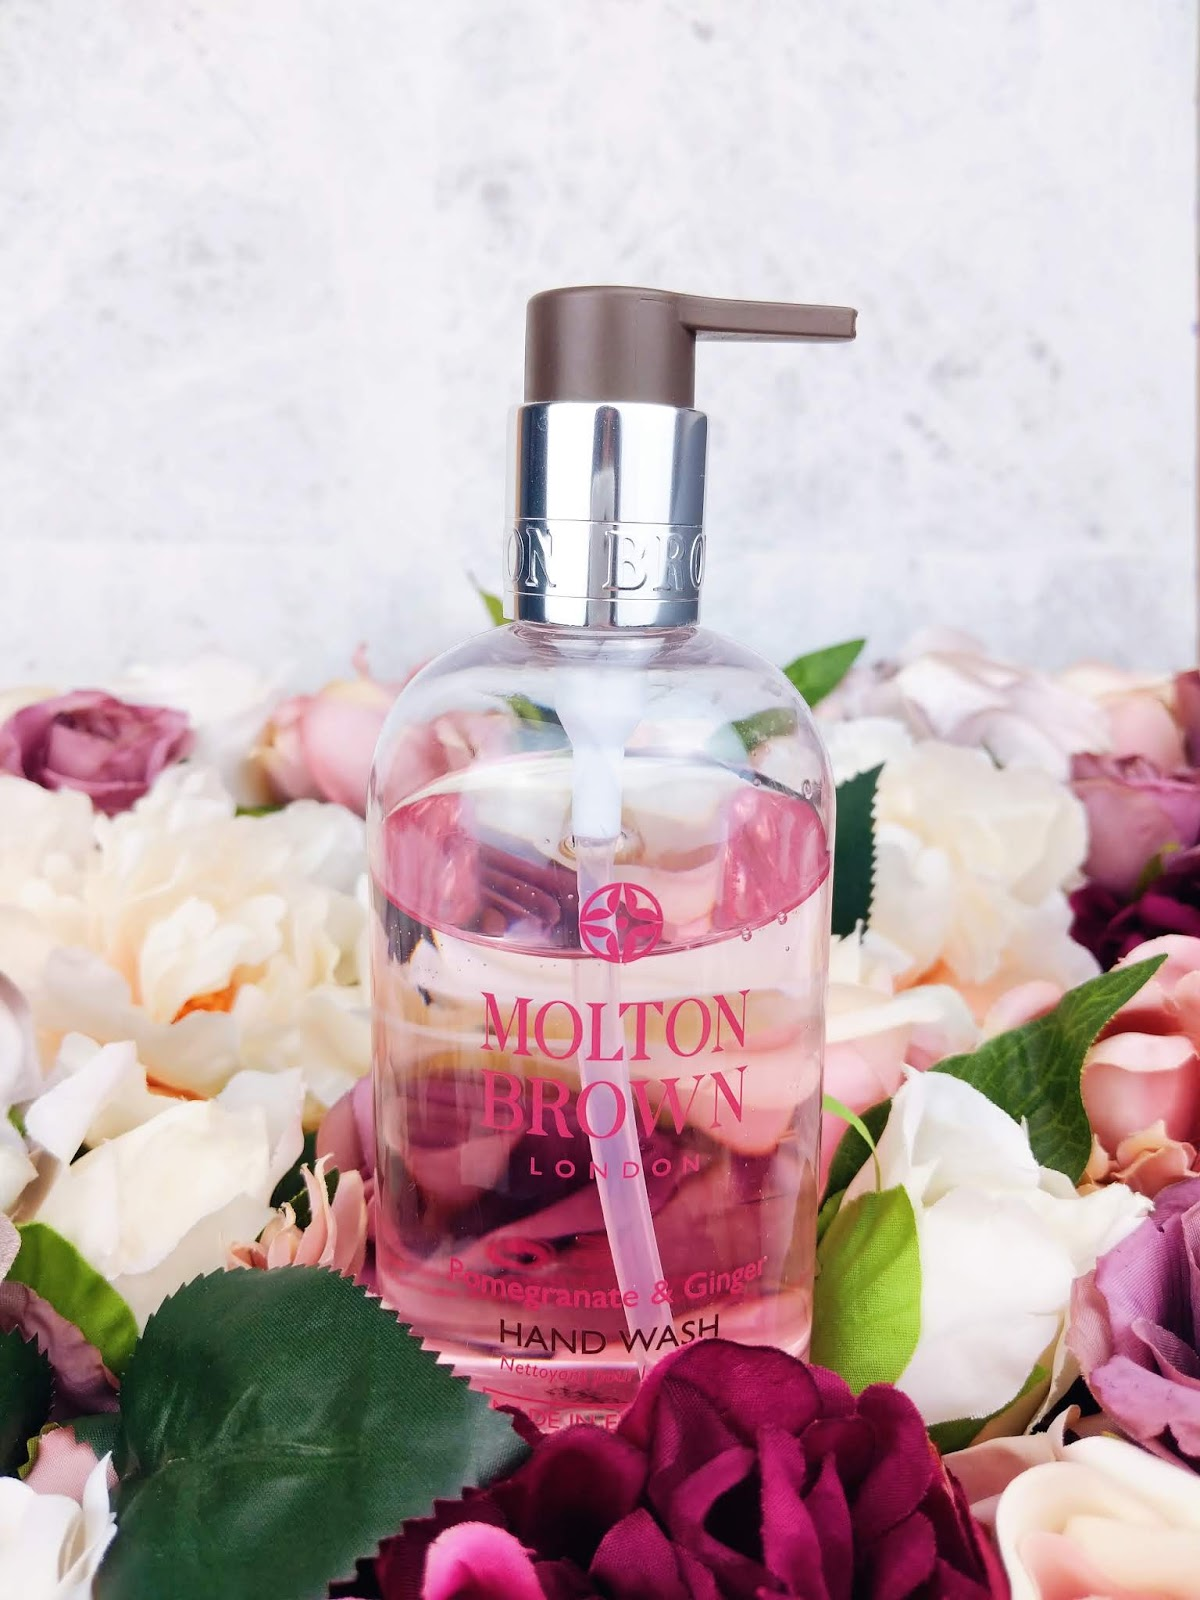 Molton_Brown_Pomegranate_and_Ginger_Hand_Wash